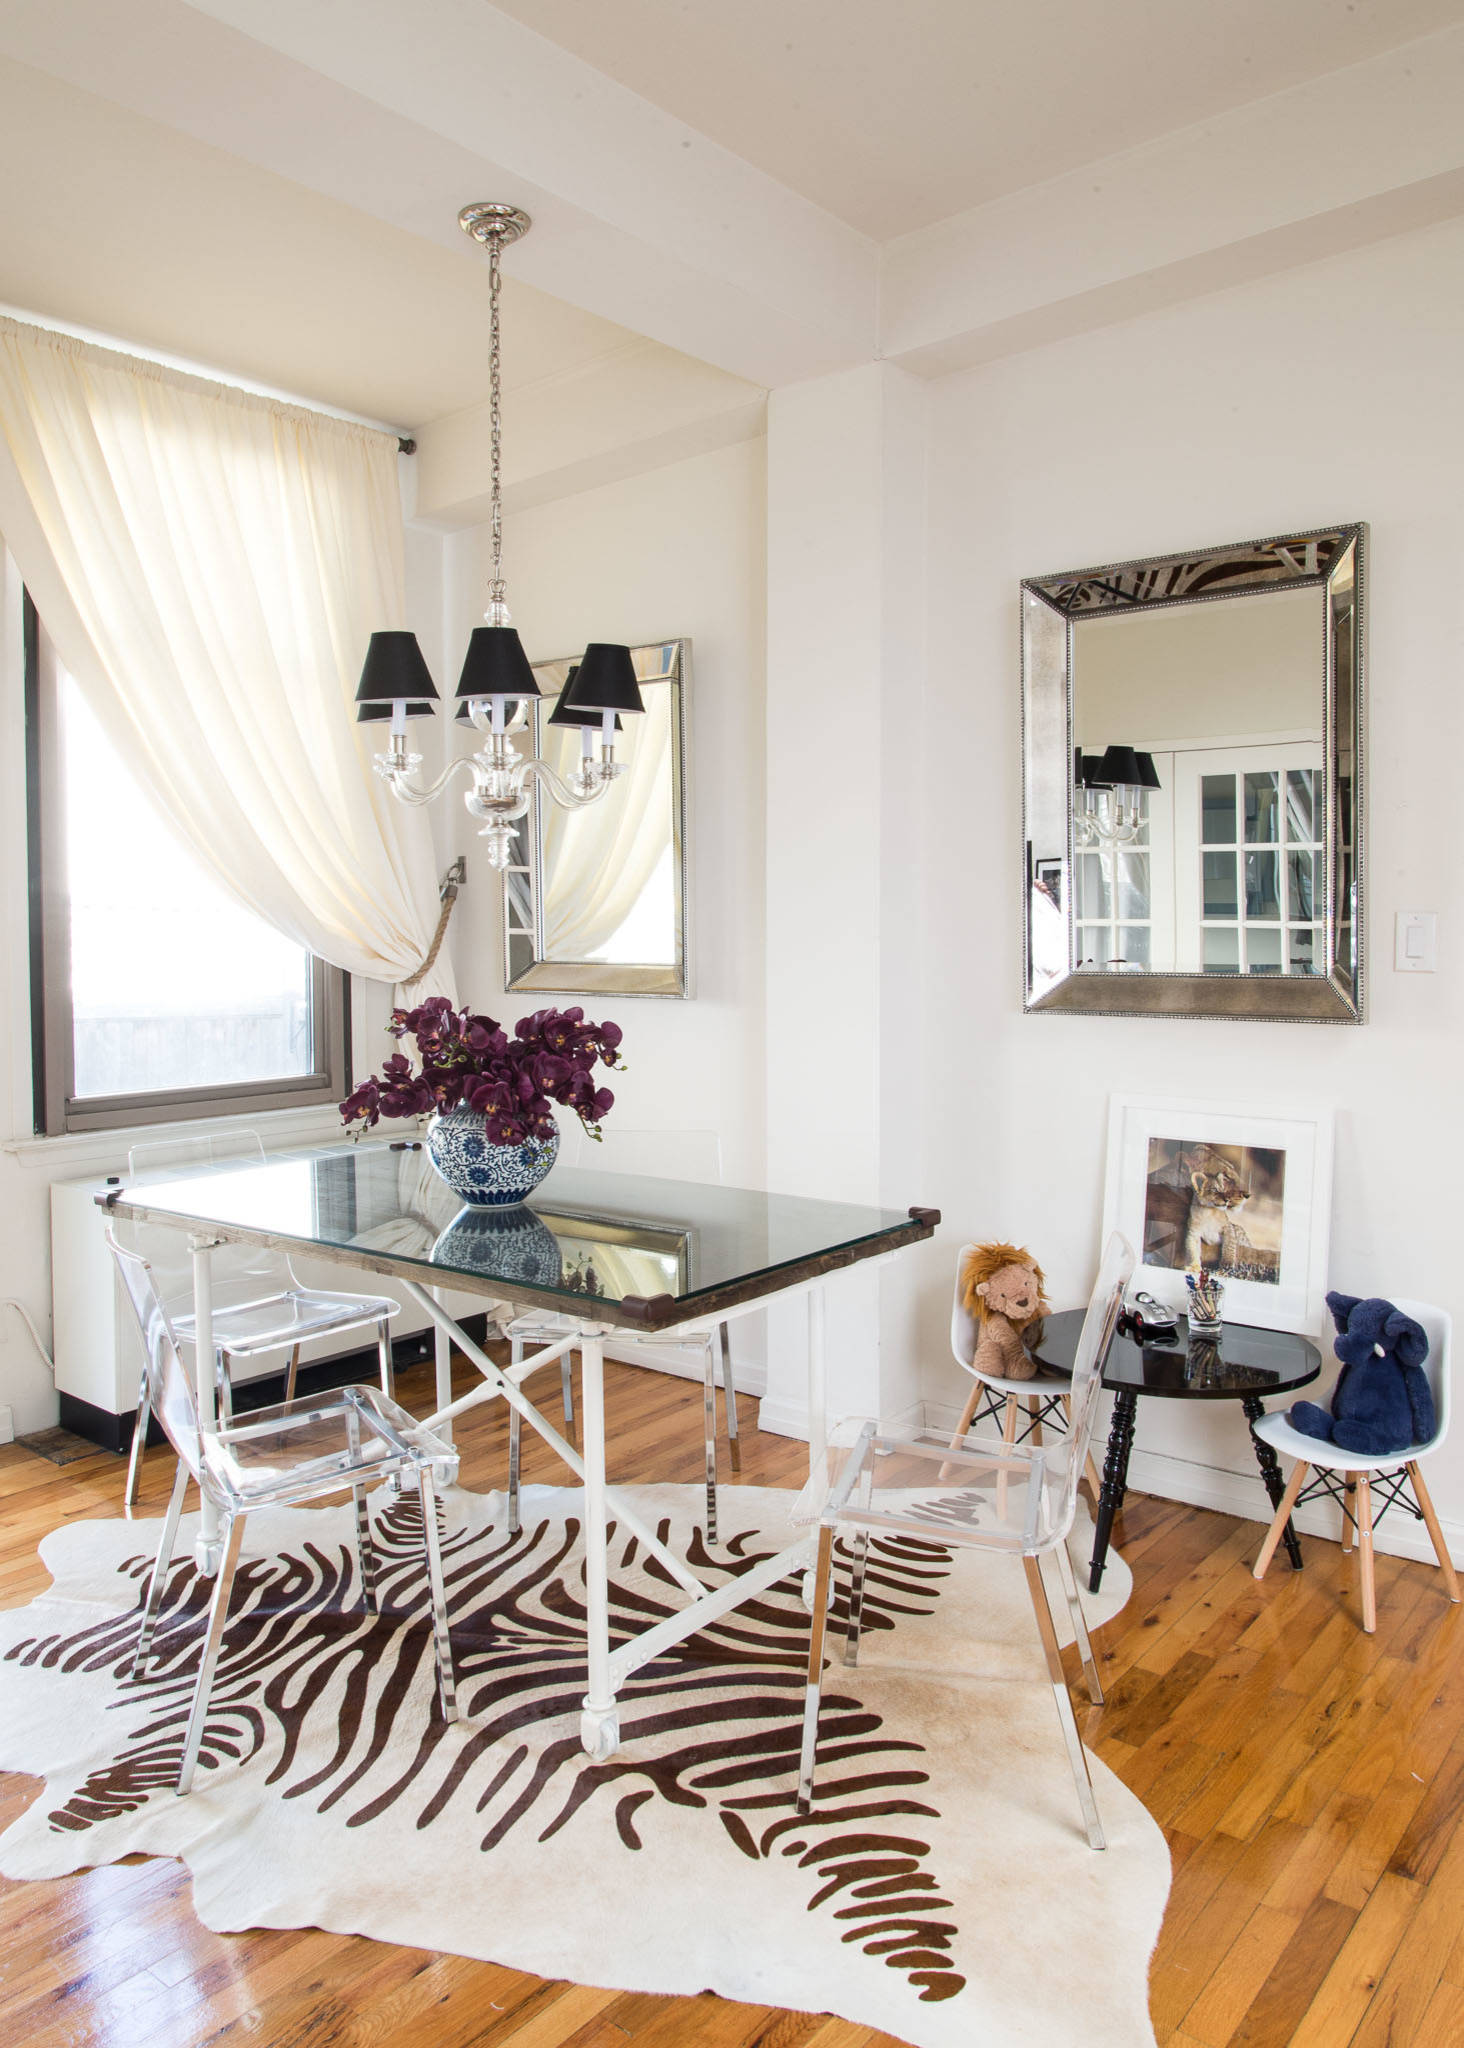 Acrylic-chairs-mirrors-and-the-white-backdrop-create-a-breezy-beautiful-dining-room-that-is-spacious-despite-its-small-size-33892